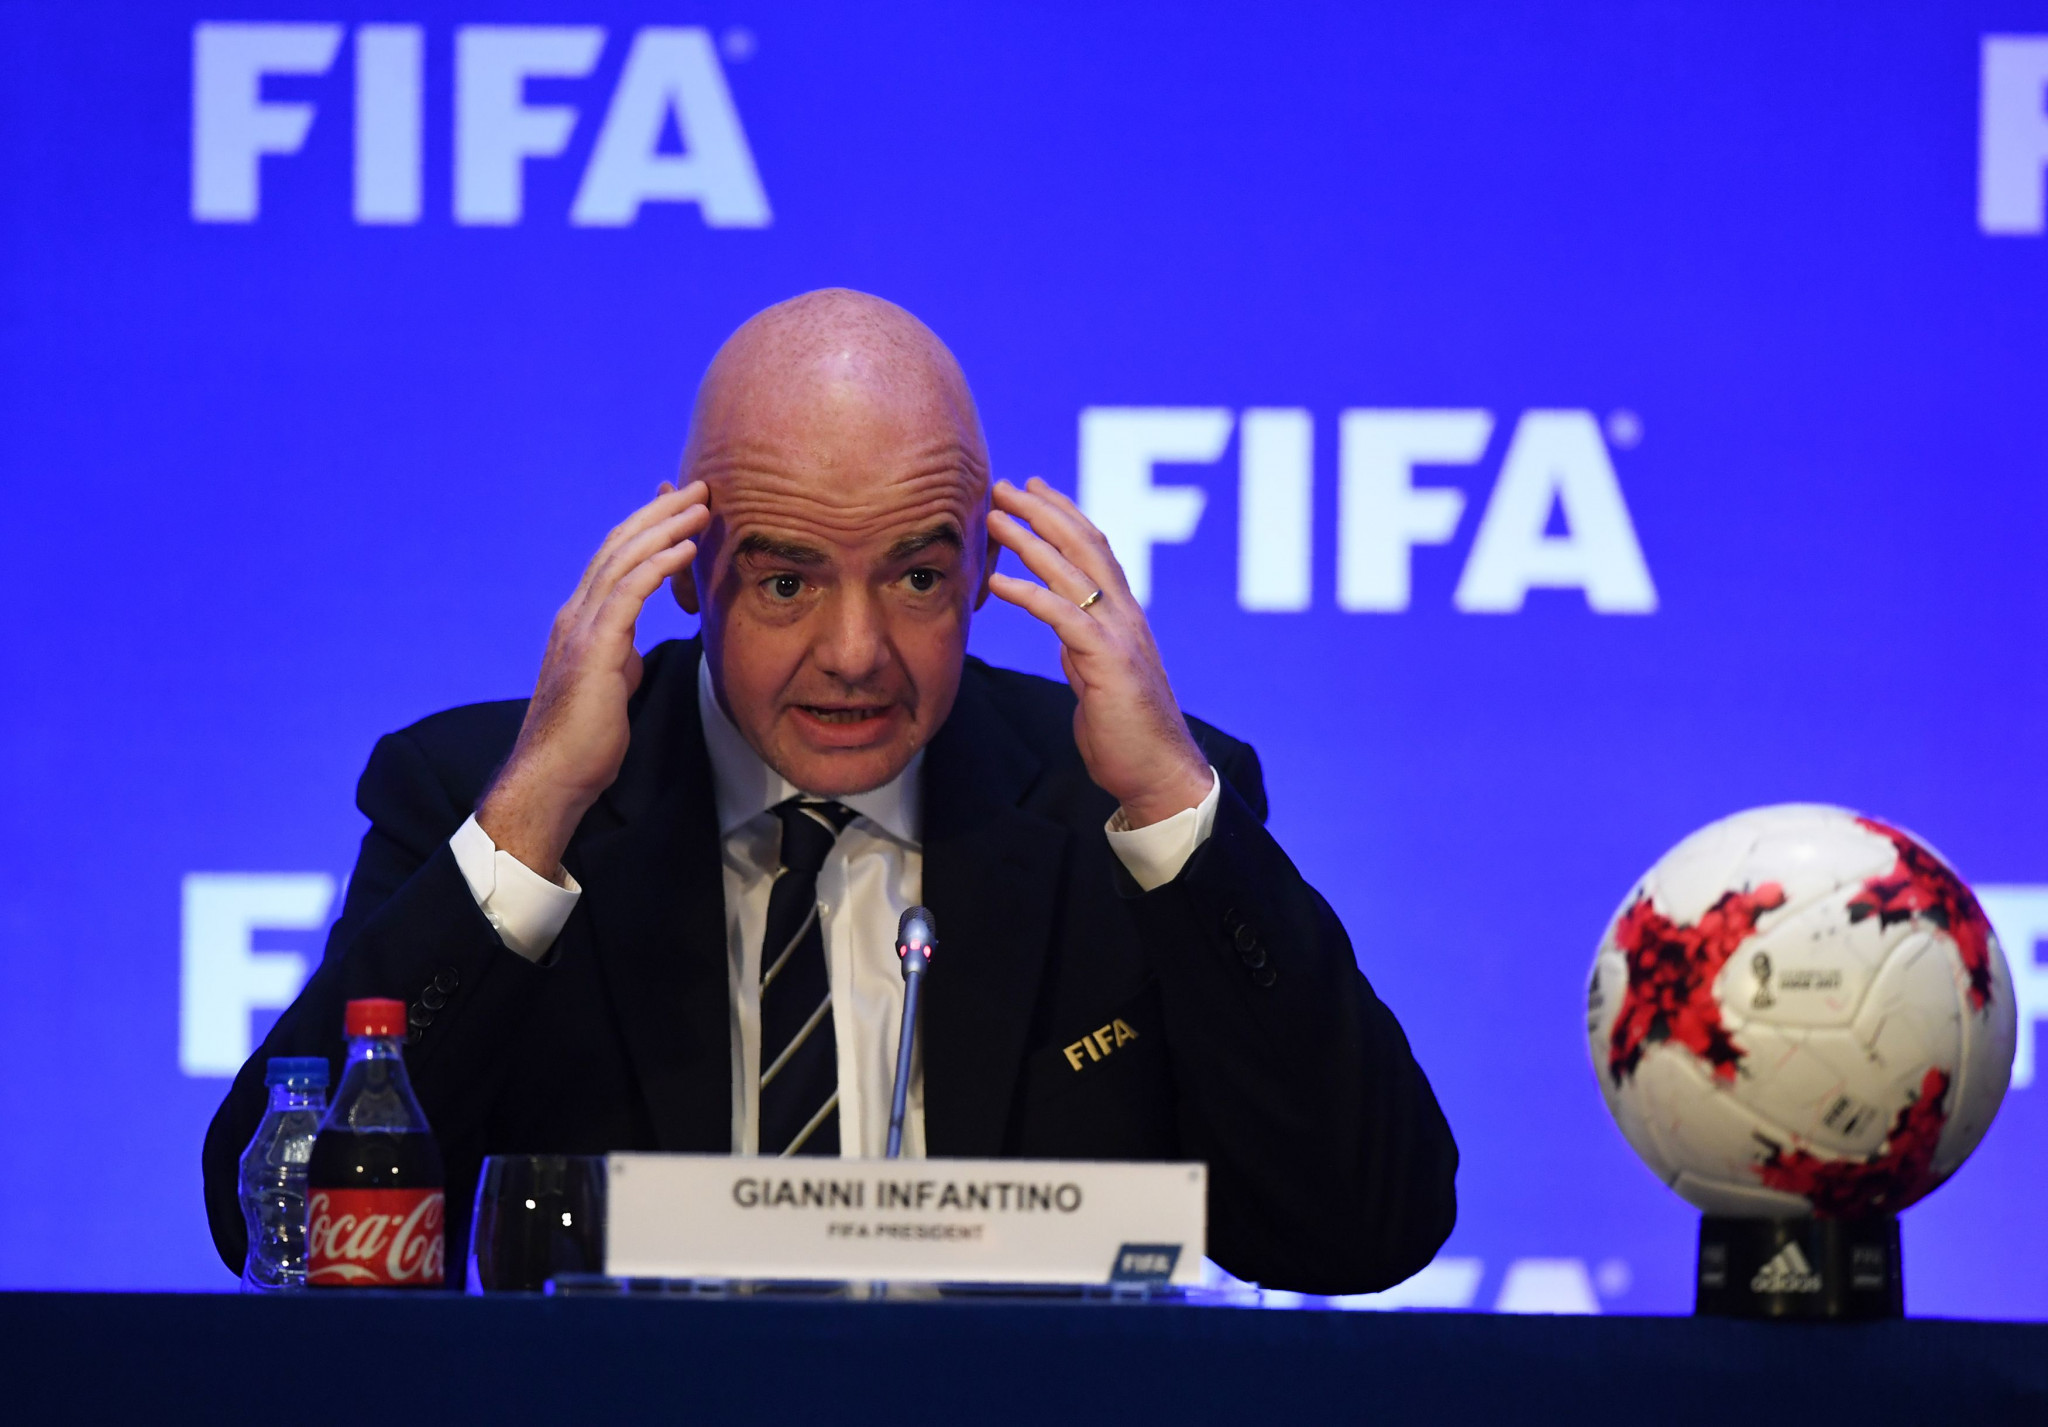 FIFA President Gianni Infantino has said matches at next year's World Cup in Russia could be abandoned by referees due to racism or other discriminatory incidents ©Getty Images